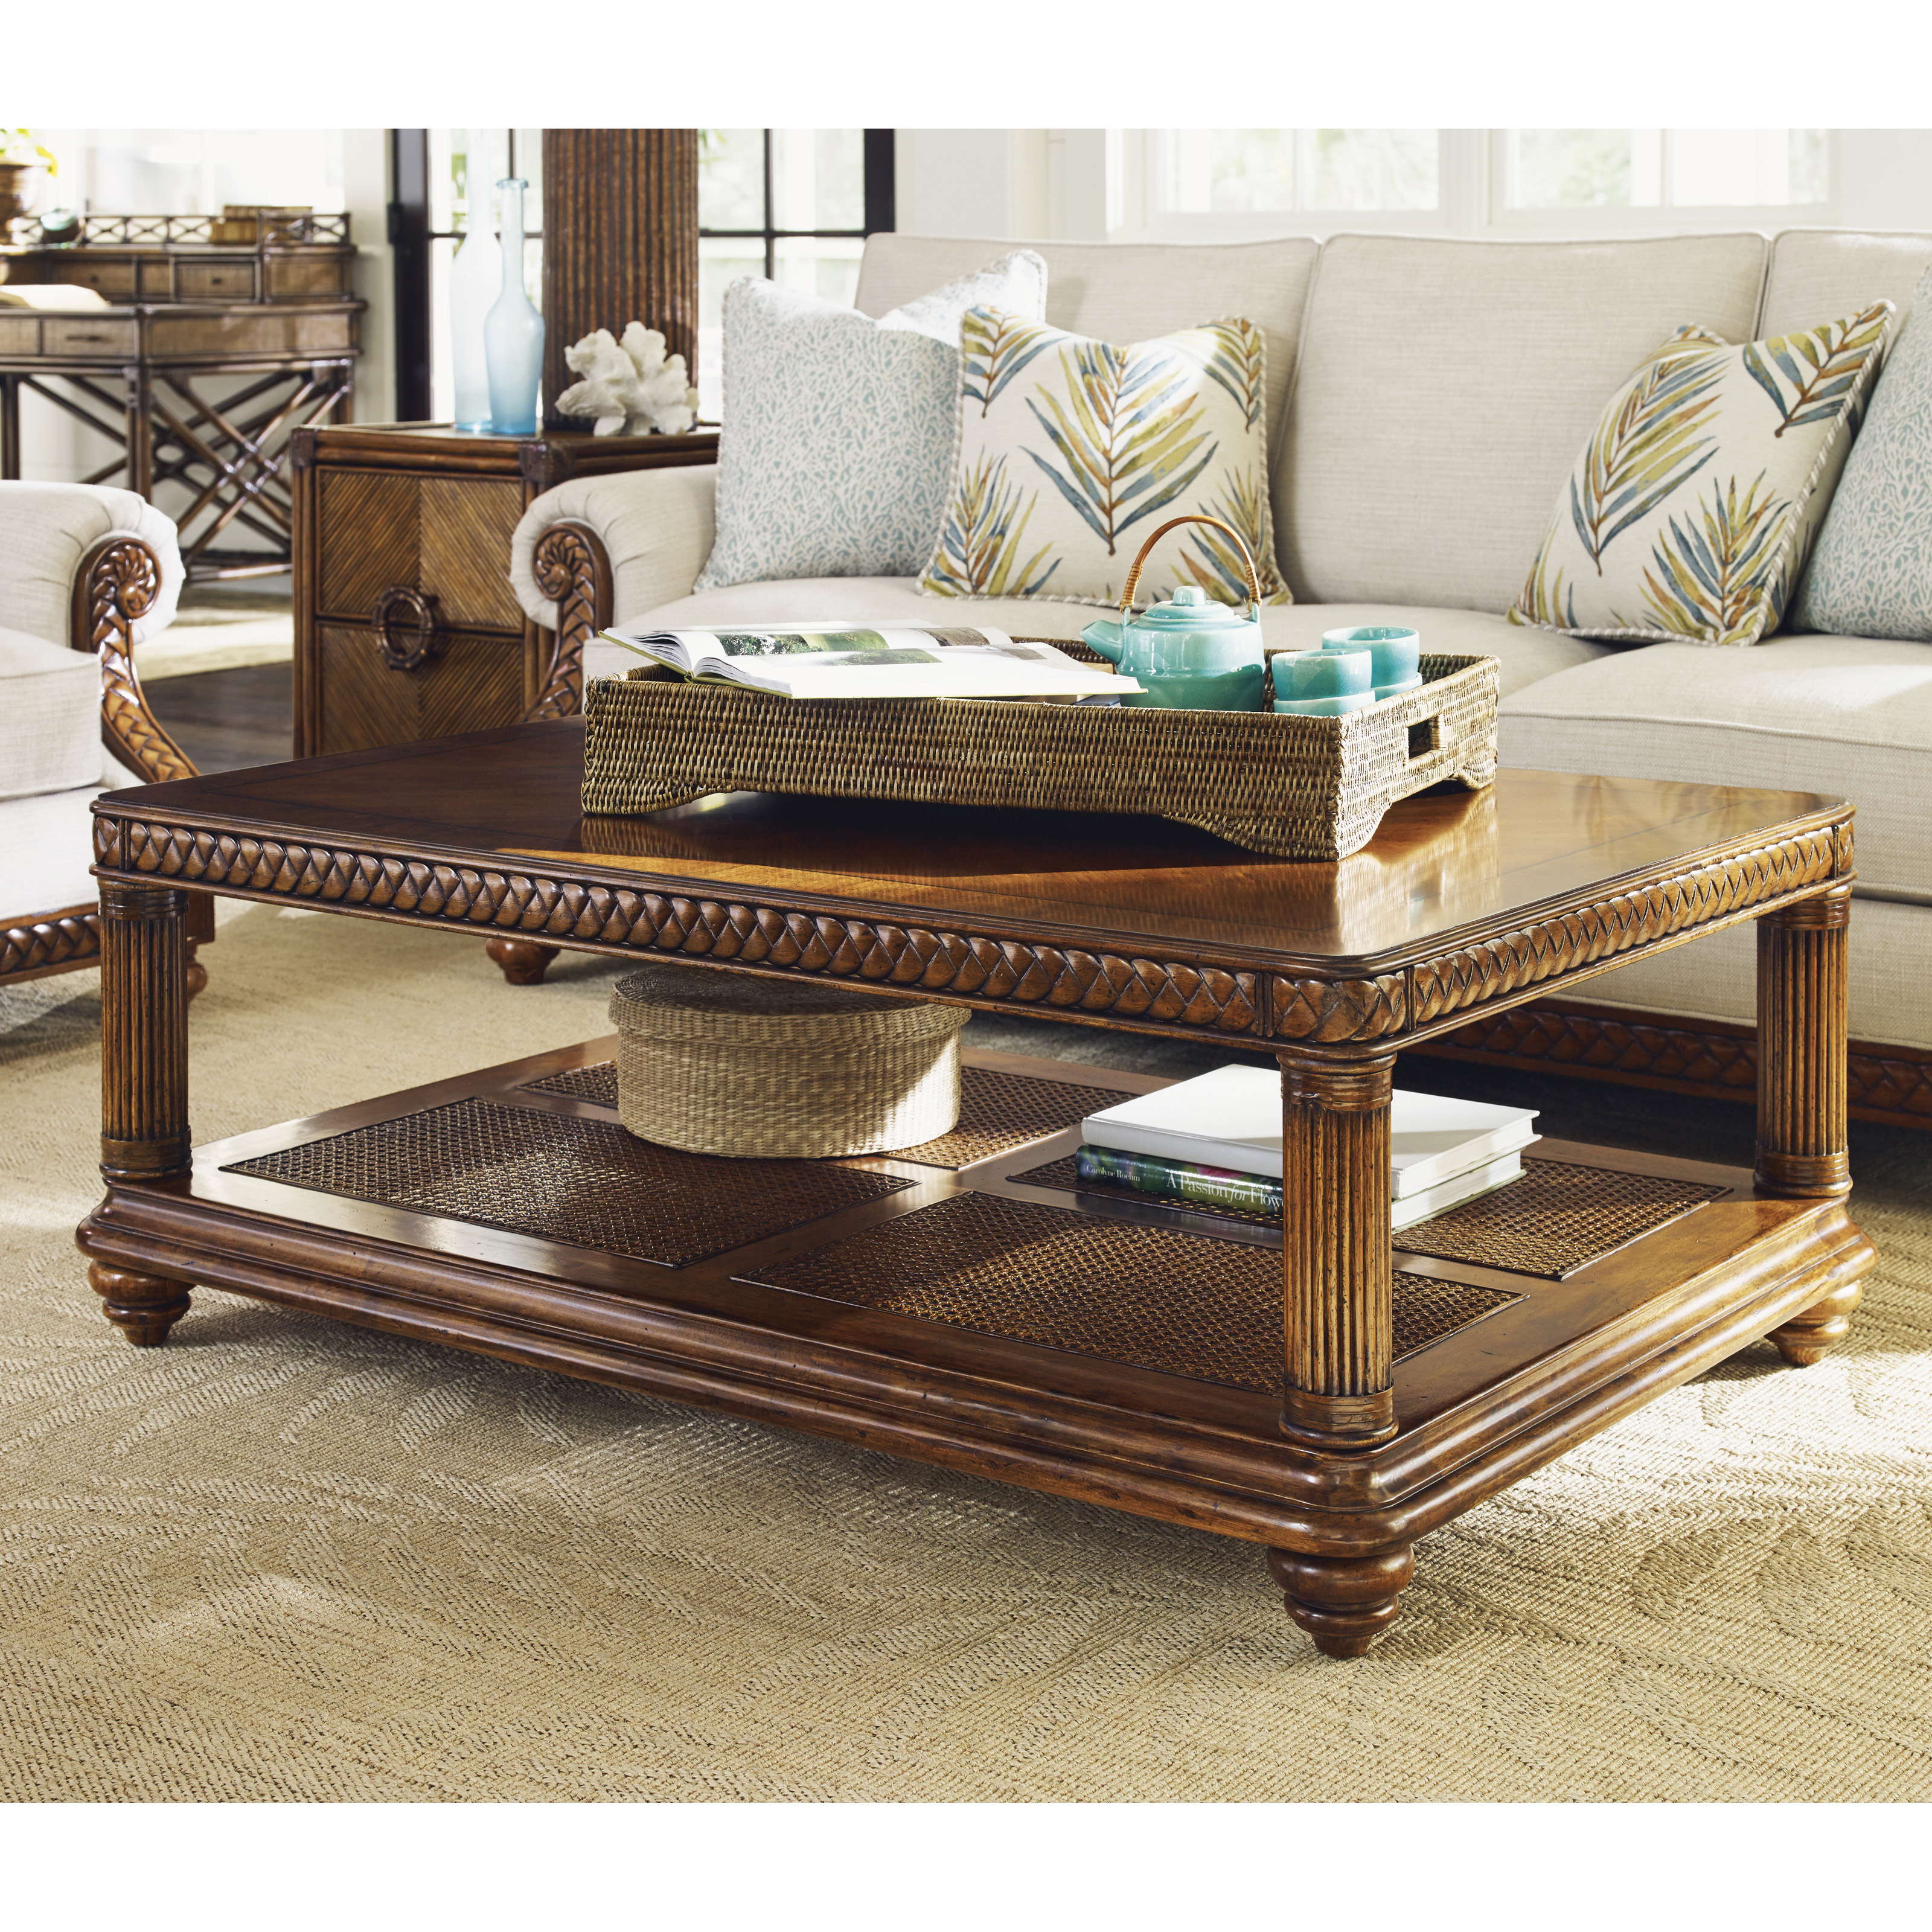 Tommy Bahama Ocean Club Solstice Rectangle Travertine and Wood